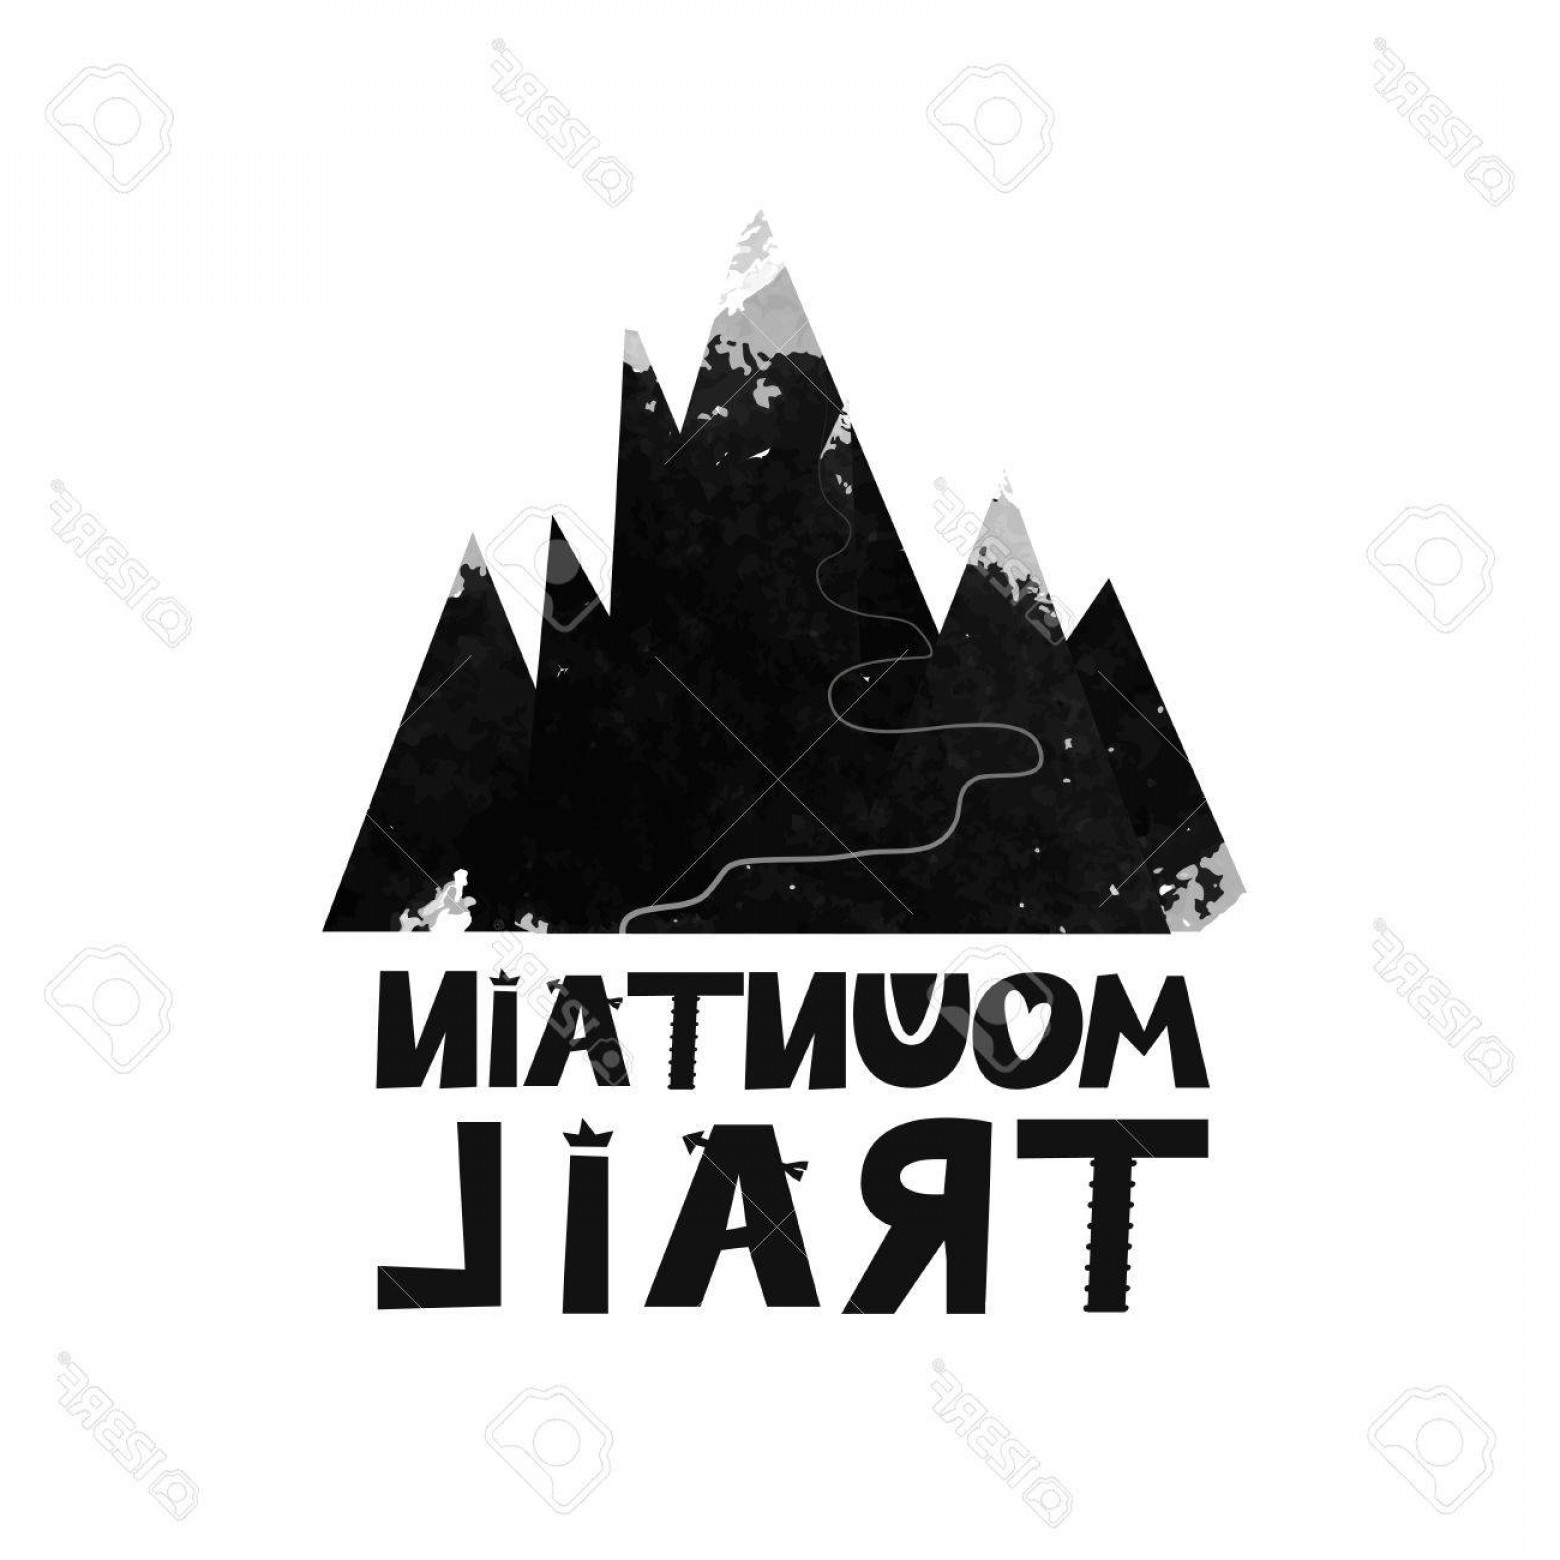 Mountain Trail Vector: Photostock Vector Card Mountain Trail To The Top Black And White Scandinavian Style Illustrations Design For Textile W